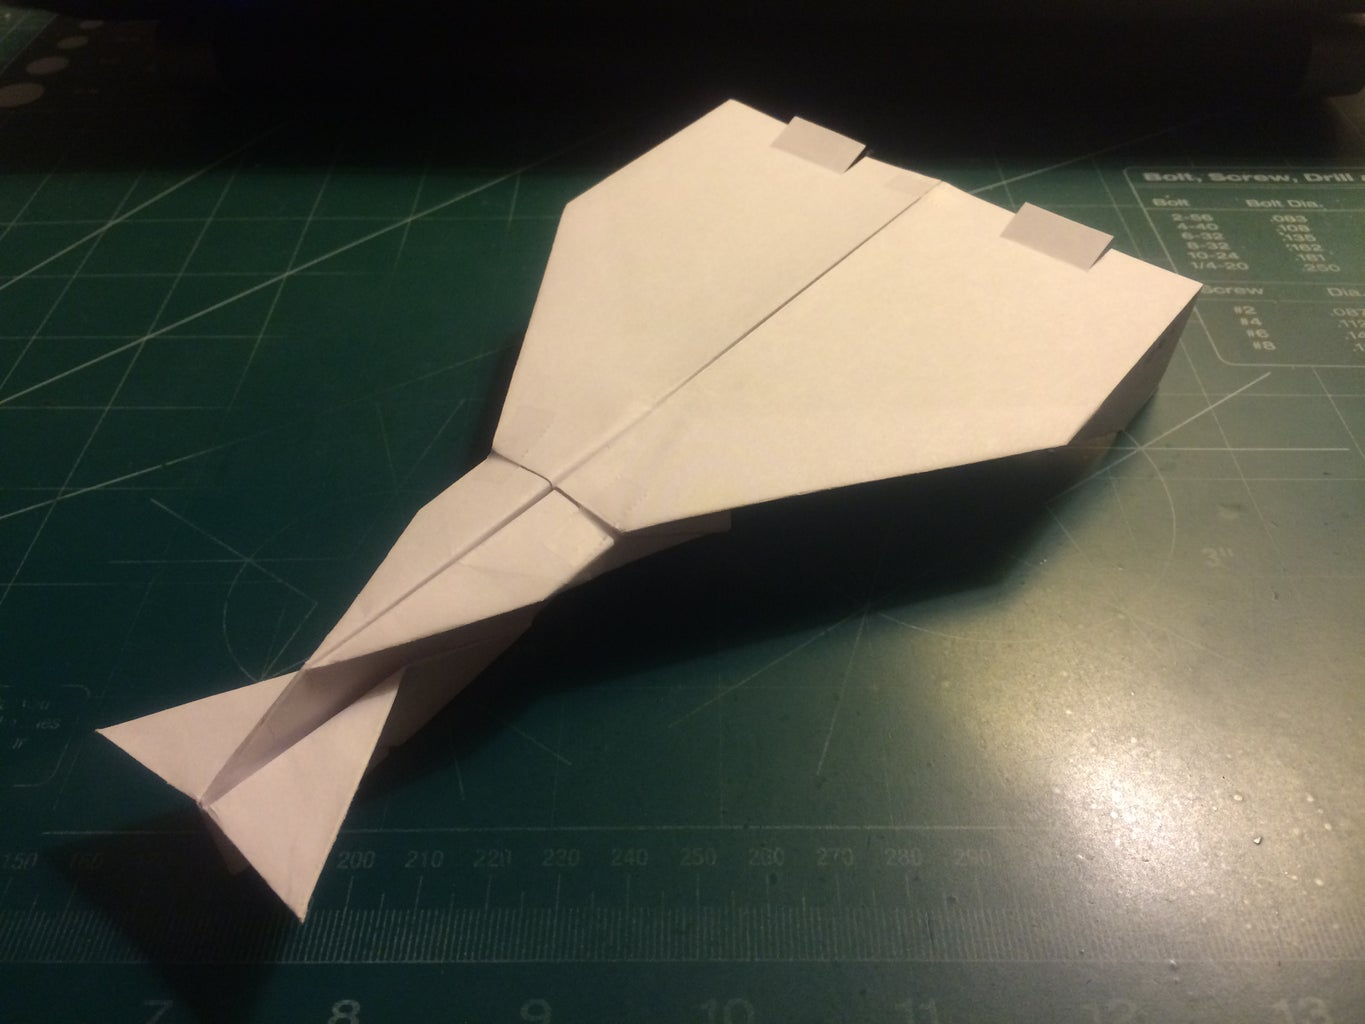 How to Make the Valkyrie Paper Airplane